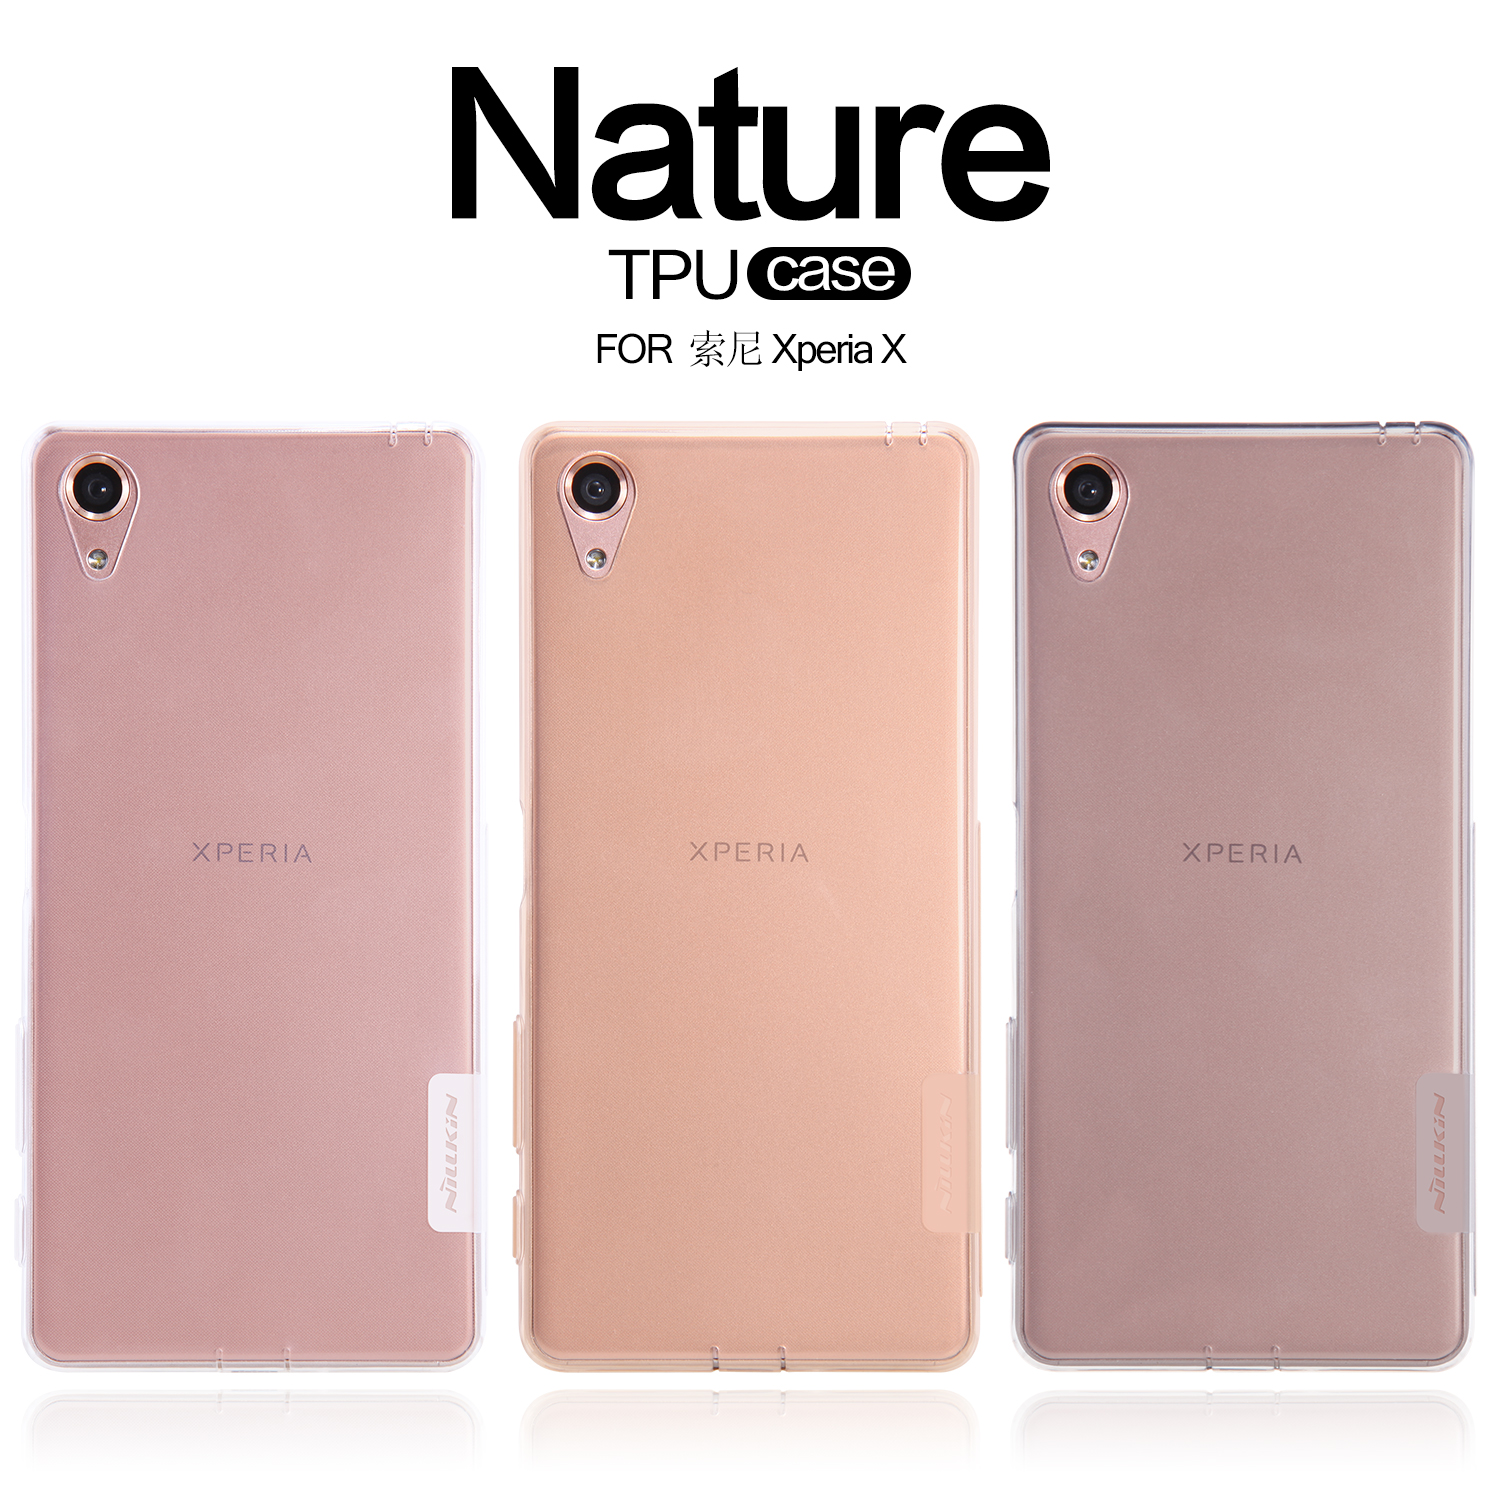 buy online 78ba5 e84ca Details about For Xperia X Case Nillkin Nature Protective TPU Case Cover  For Sony Xperia X